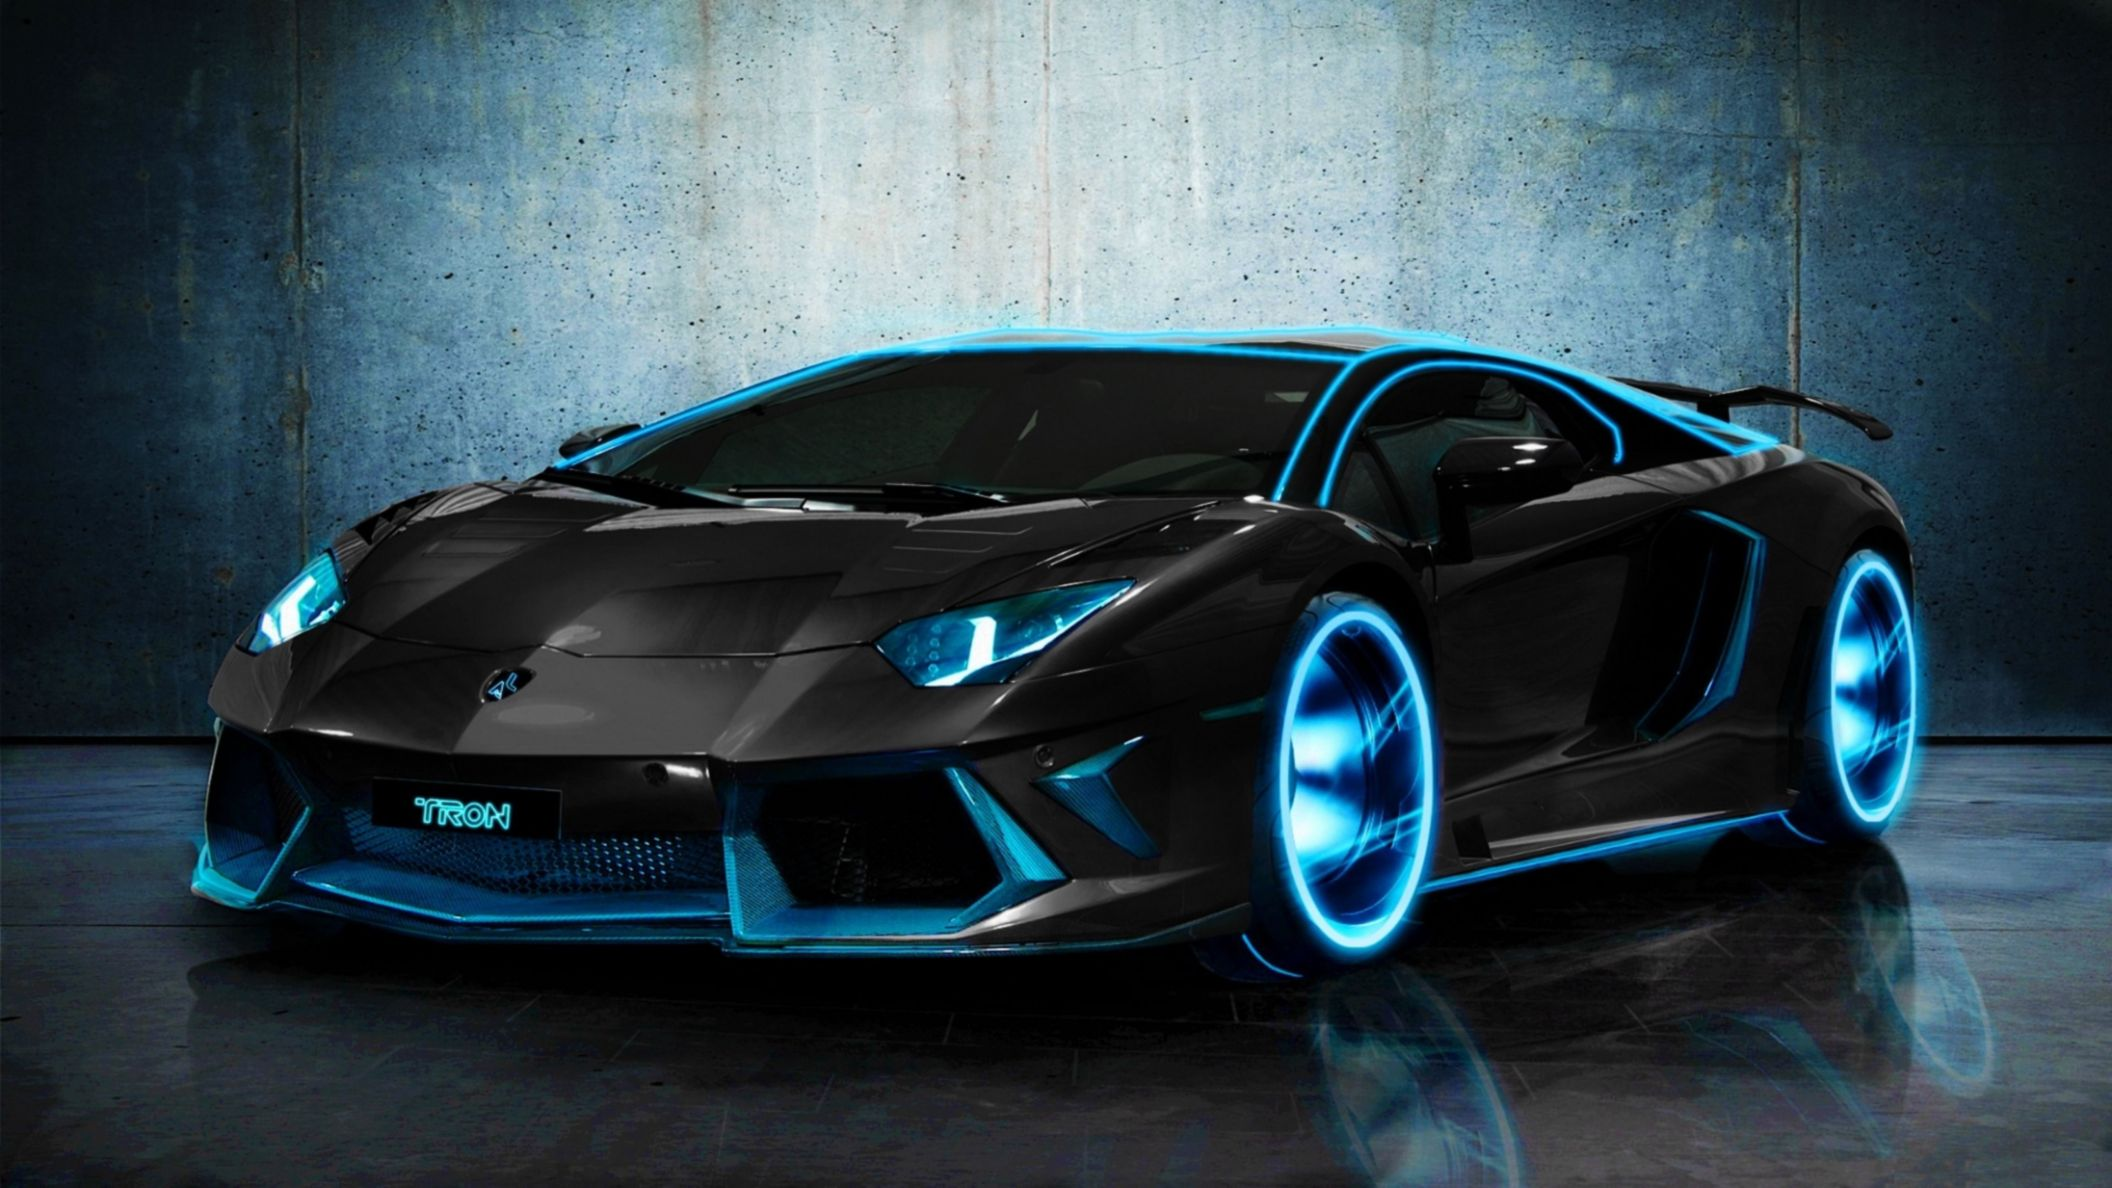 Download free HD Tron Lamborghini Aventador HD Wallpaper, image